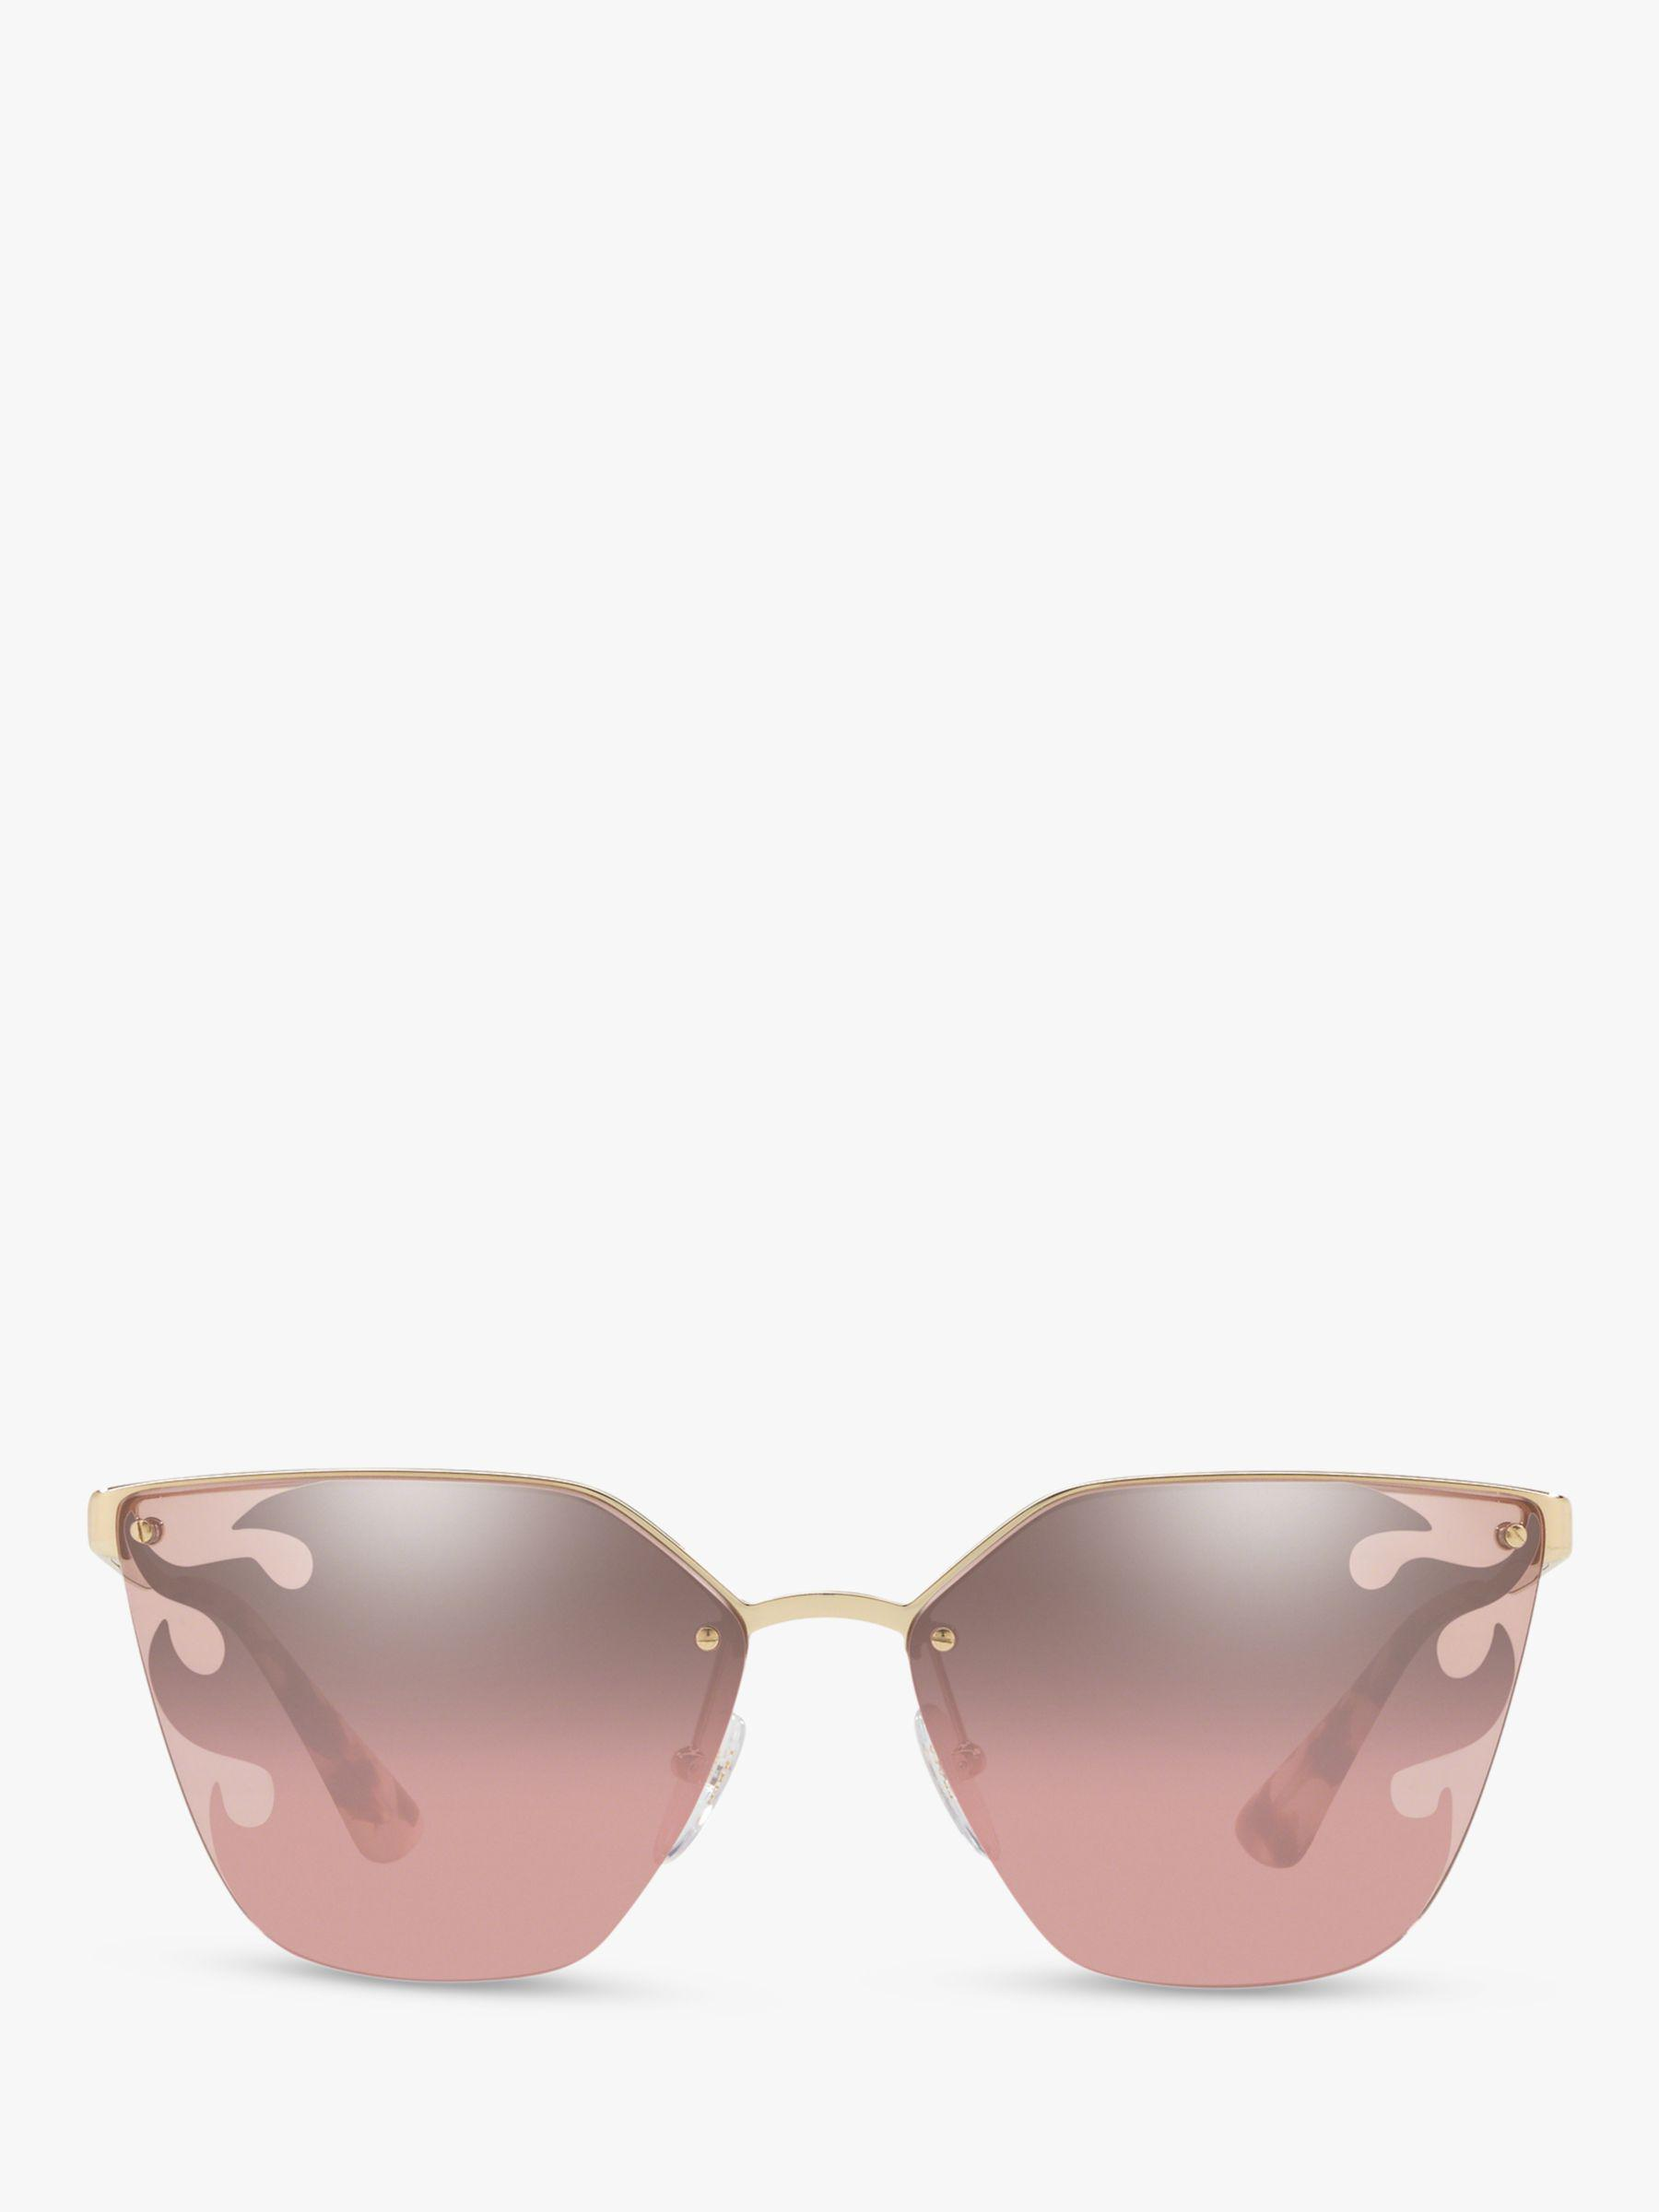 30a433e6ec2 Prada Pr 68ts Women s Cat s Eye Sunglasses in Pink - Lyst